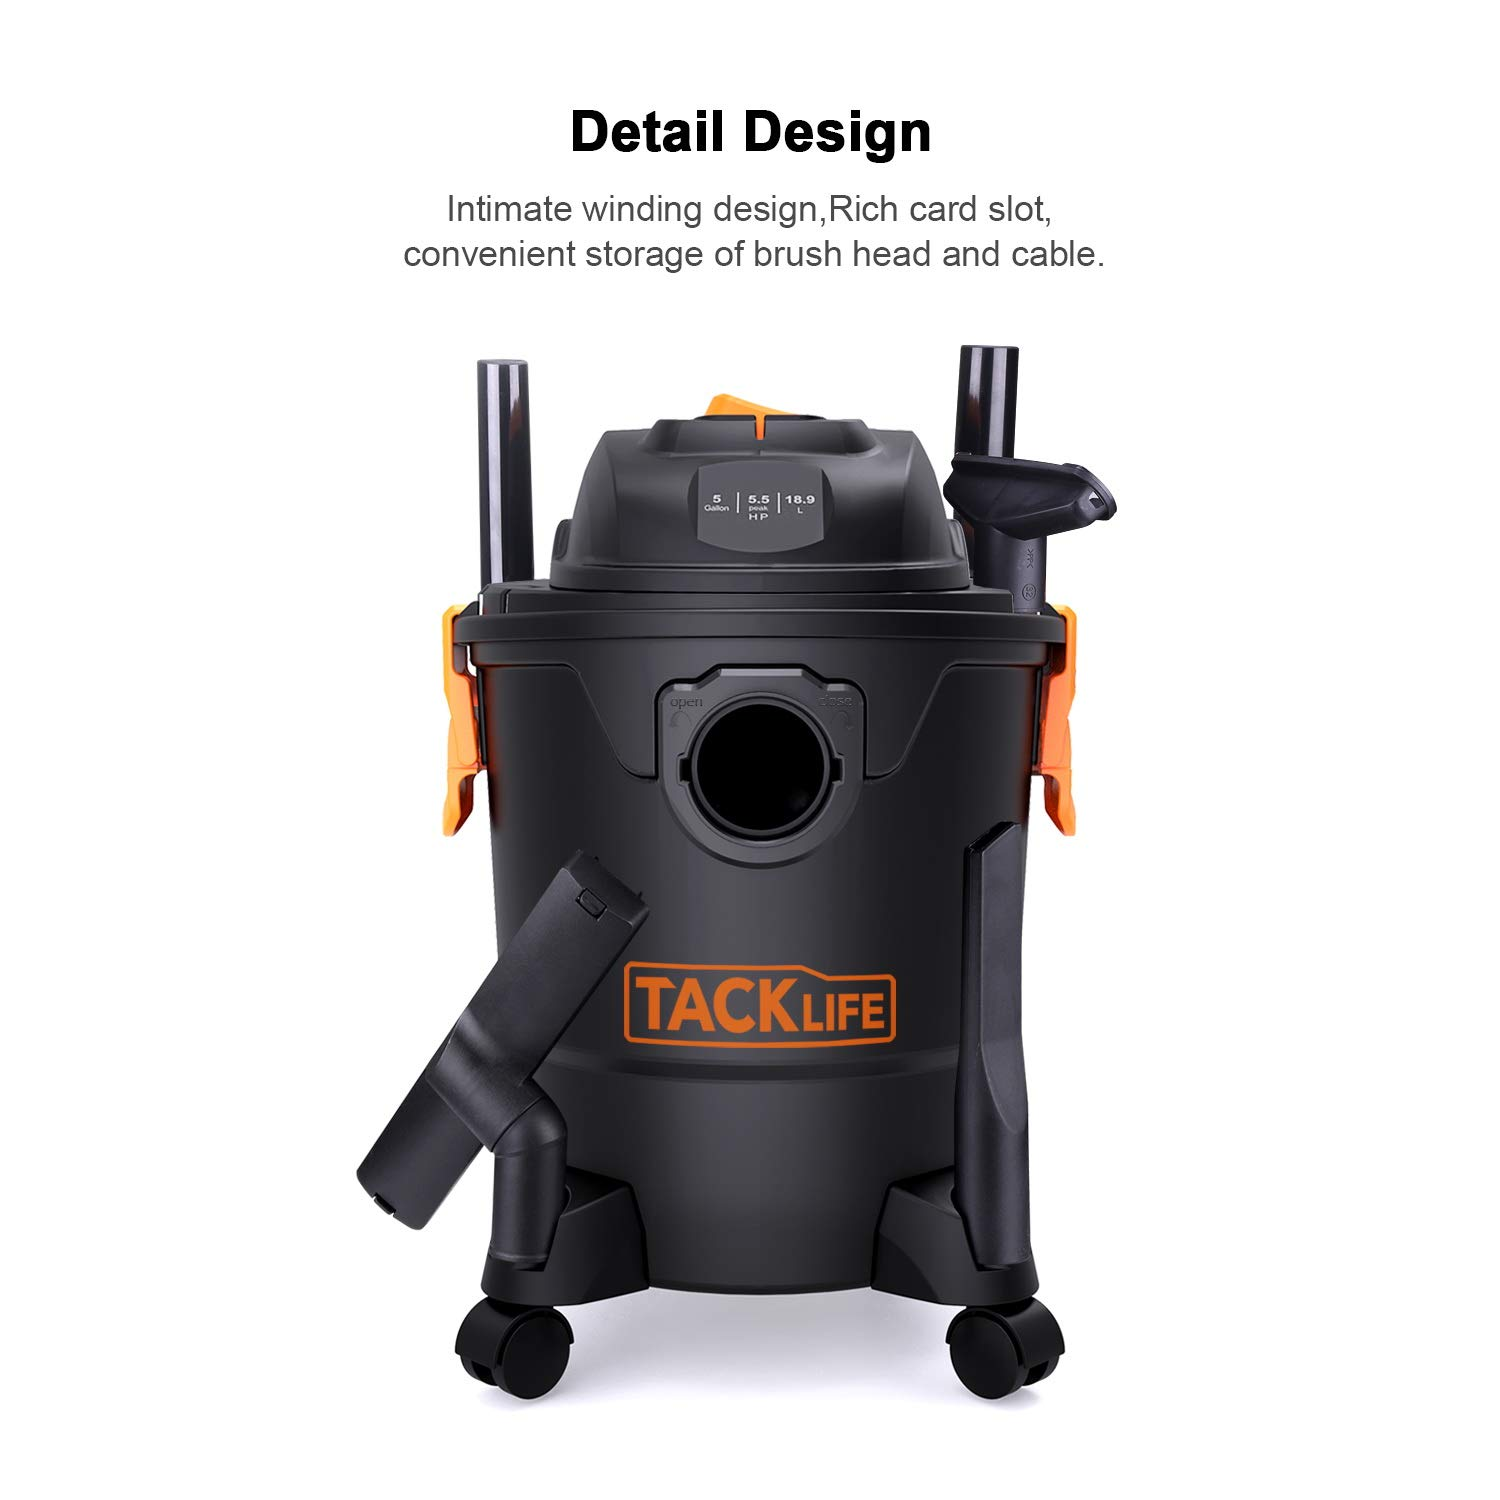 TACKLIFE Wet Dry Vacuum, 5 Gallon, 5.5 Peak HP with 20 FT Clean Range, 4-Layer Filtration System and Safety Buoy Technology for Dry/Wet/Blowing, Multipurpose Accessories Included - PVC01A by TACKLIFE (Image #8)